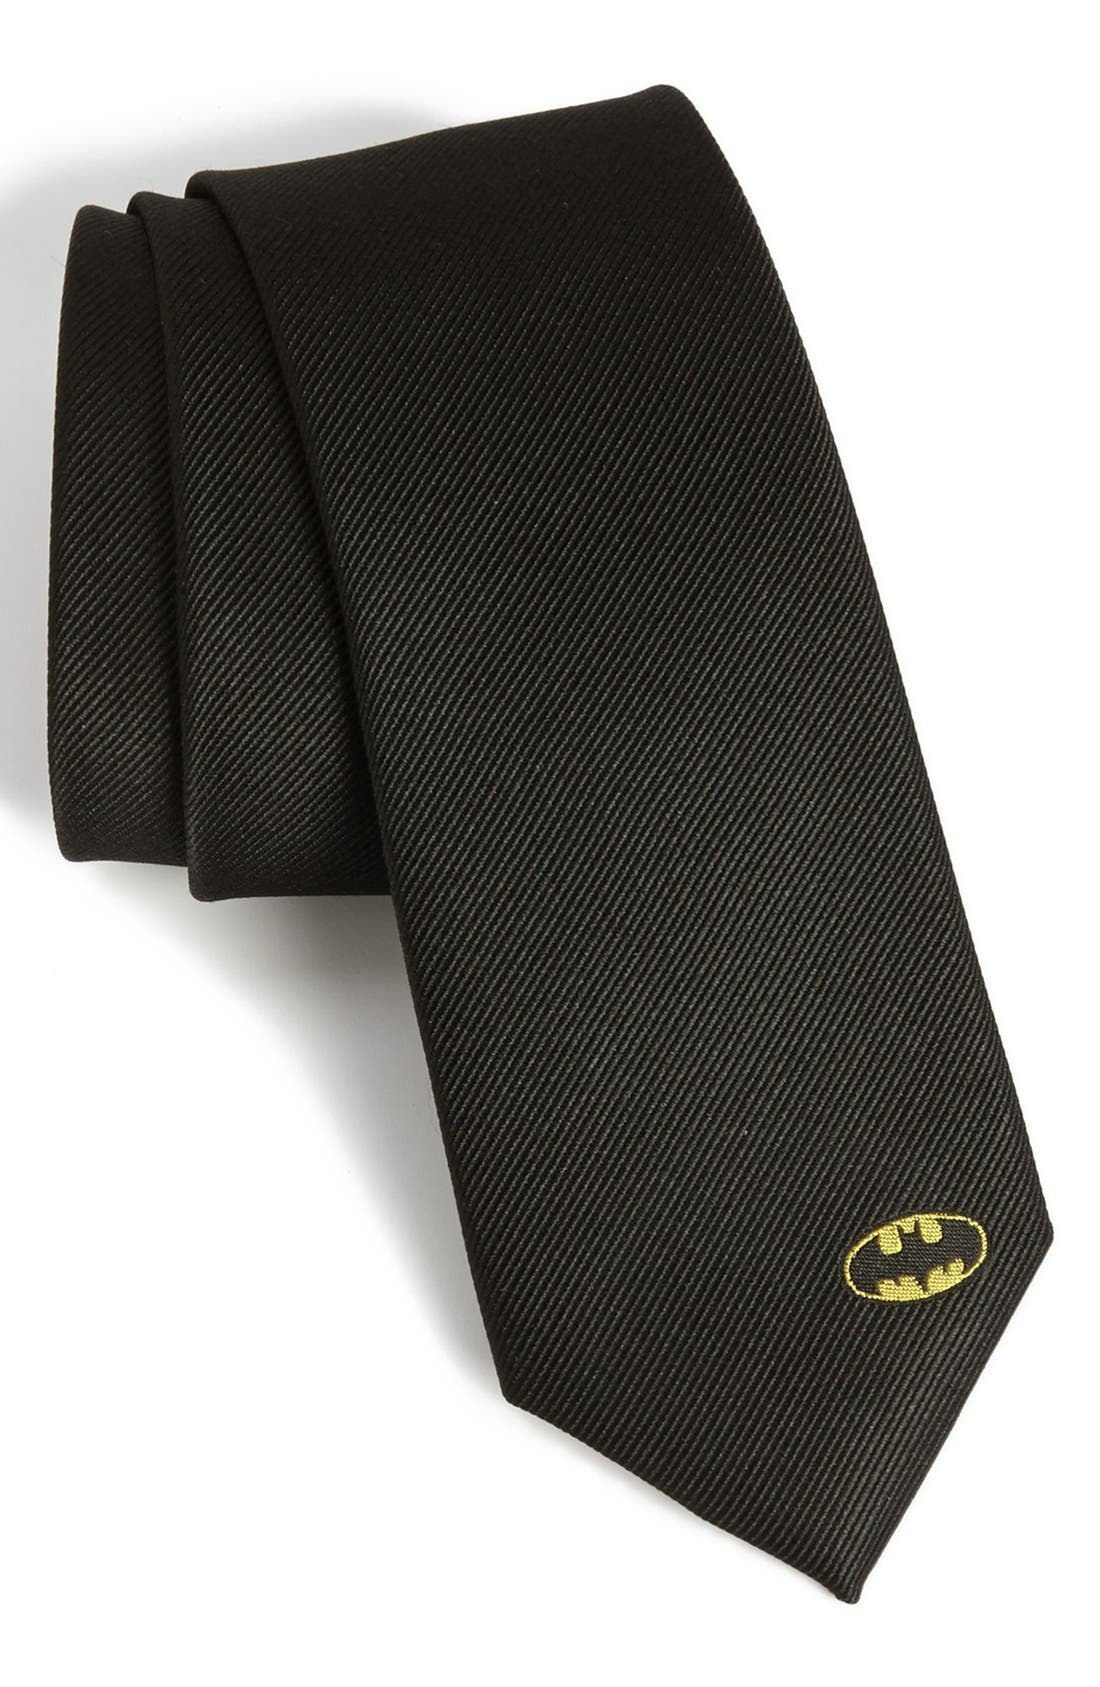 Alternate Image 1 Selected - DC Comics Batman Solid Tie